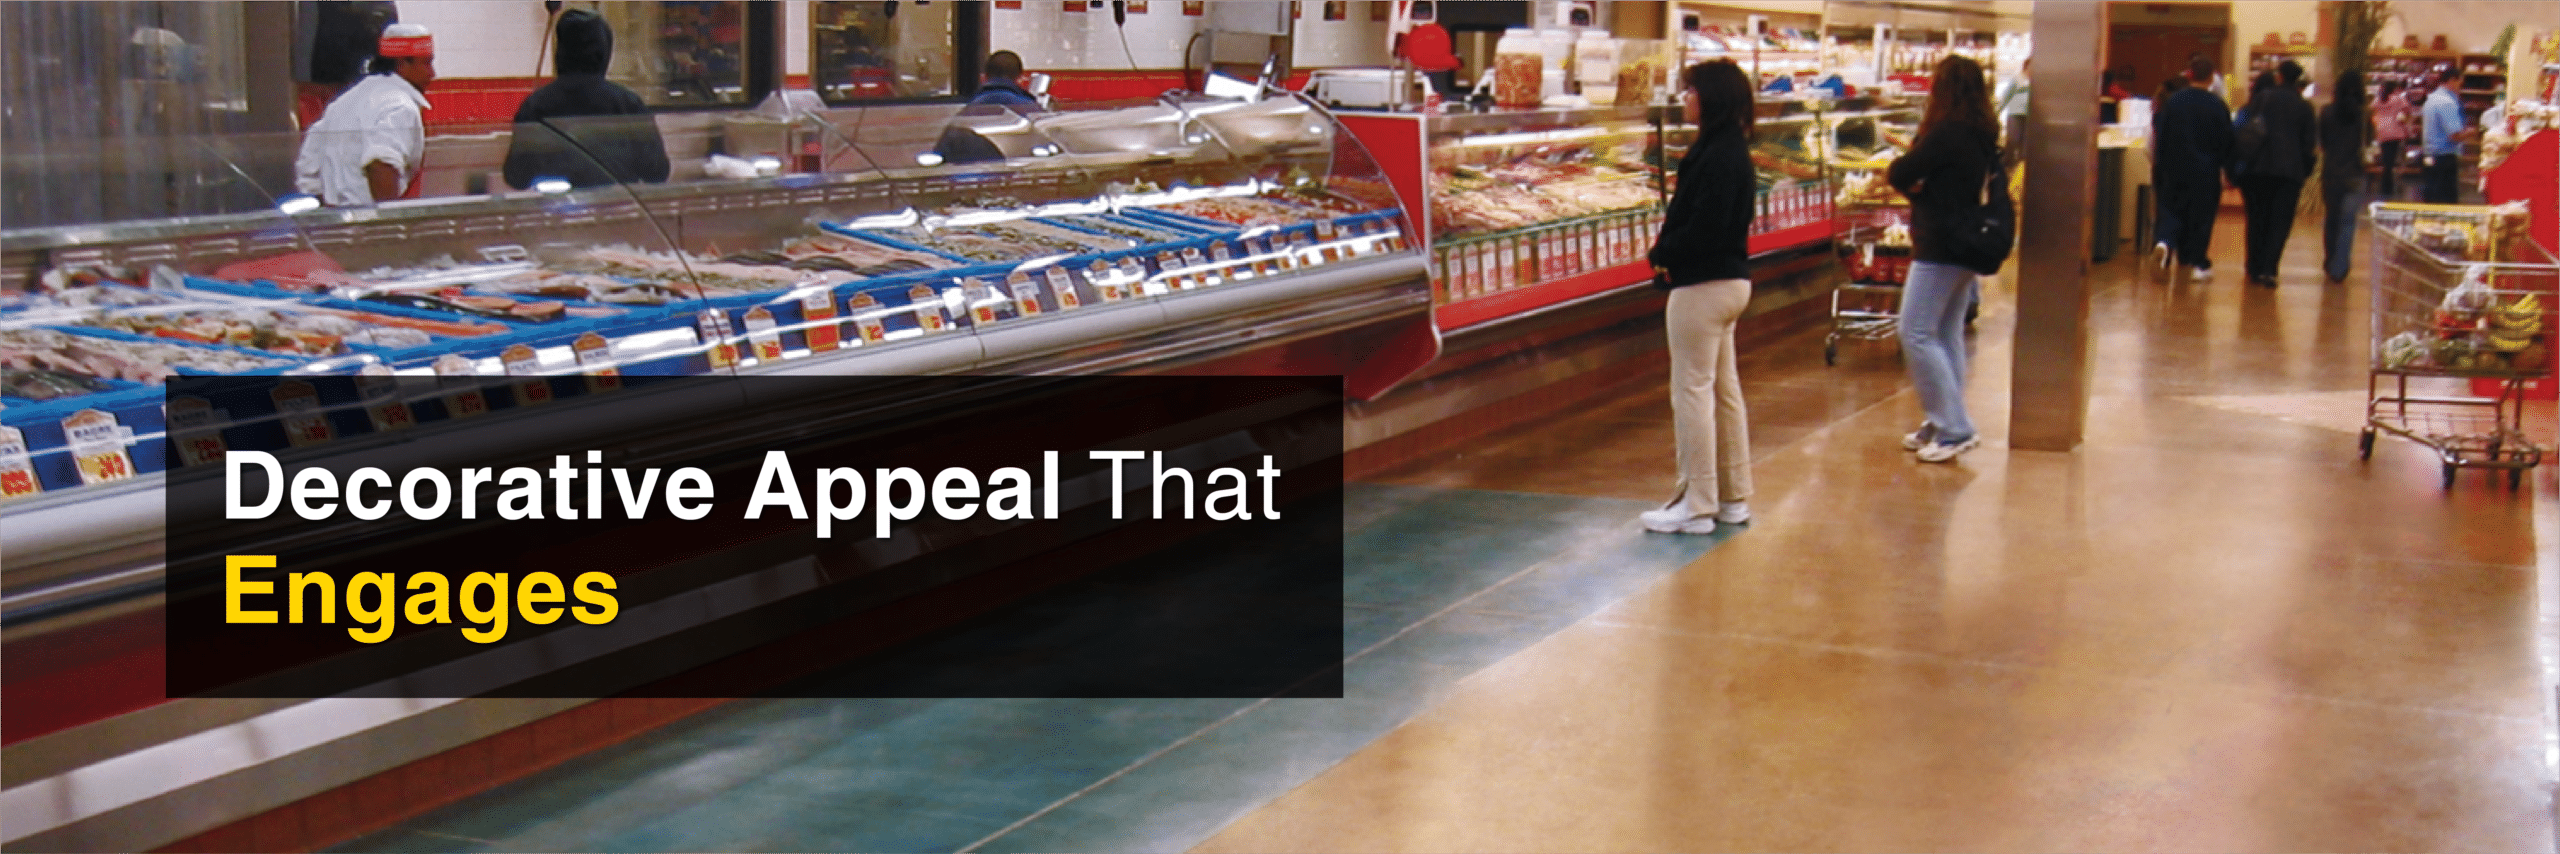 Grocery store meat counter floor area with concrete acid stain and industrial top coat with tag line: Decorative Appeal That Engages. Kemiko Is Decorative Concrete Made Easy.